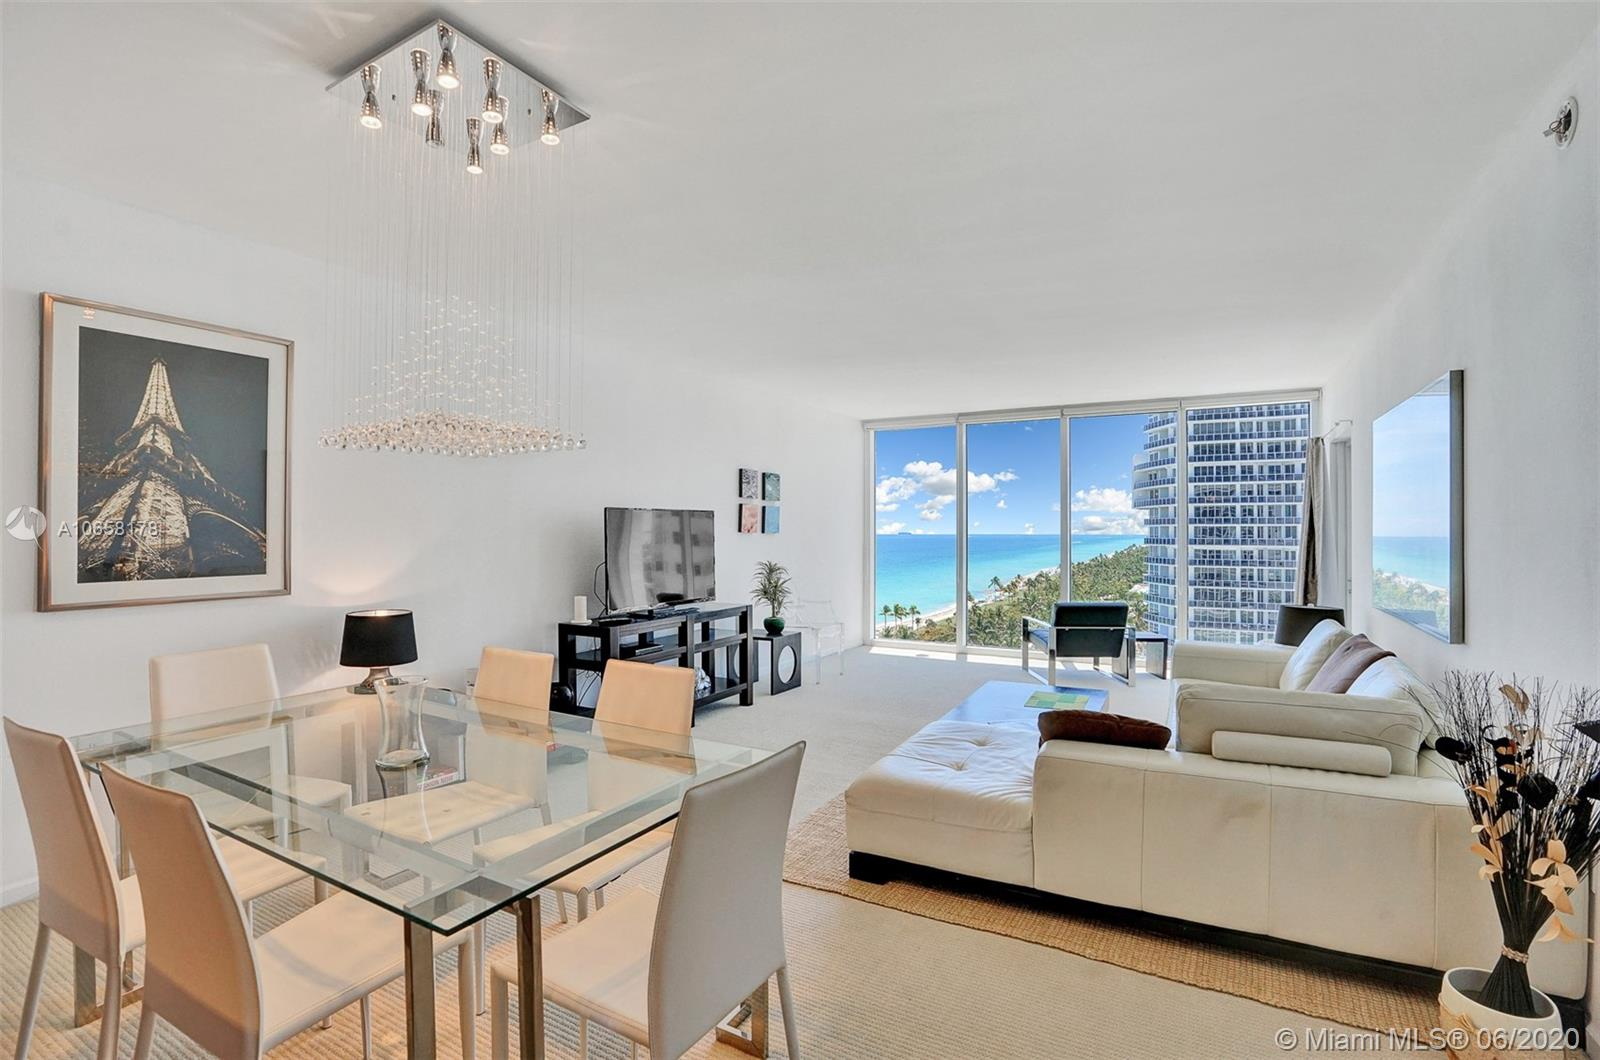 Stunning ocean views from best line at the prestigious Harbour House in Bal Harbour. This nearly 900Sqft. condo offers endless ocean and beach views from floor to ceiv. vling glass windows from the kitchen, living area and also the master bedroom. The spacious master bedroom offers sliding glass doors that open to a wide balcony. It boasts new laminate wood flooring, an open kitchen w/Kitchen Aid appliances, a comfortable dining + living area, a guest bathroom and WD en suite. The newly renovated Harbour House is a full service building offering 24/7 concierge, beach service, spa, fitness center, pool, valet a . It is located adjacent to the Ritz Carlton and walking distance to the famous Bal Harbour Shops. (agents see Broker remarks)